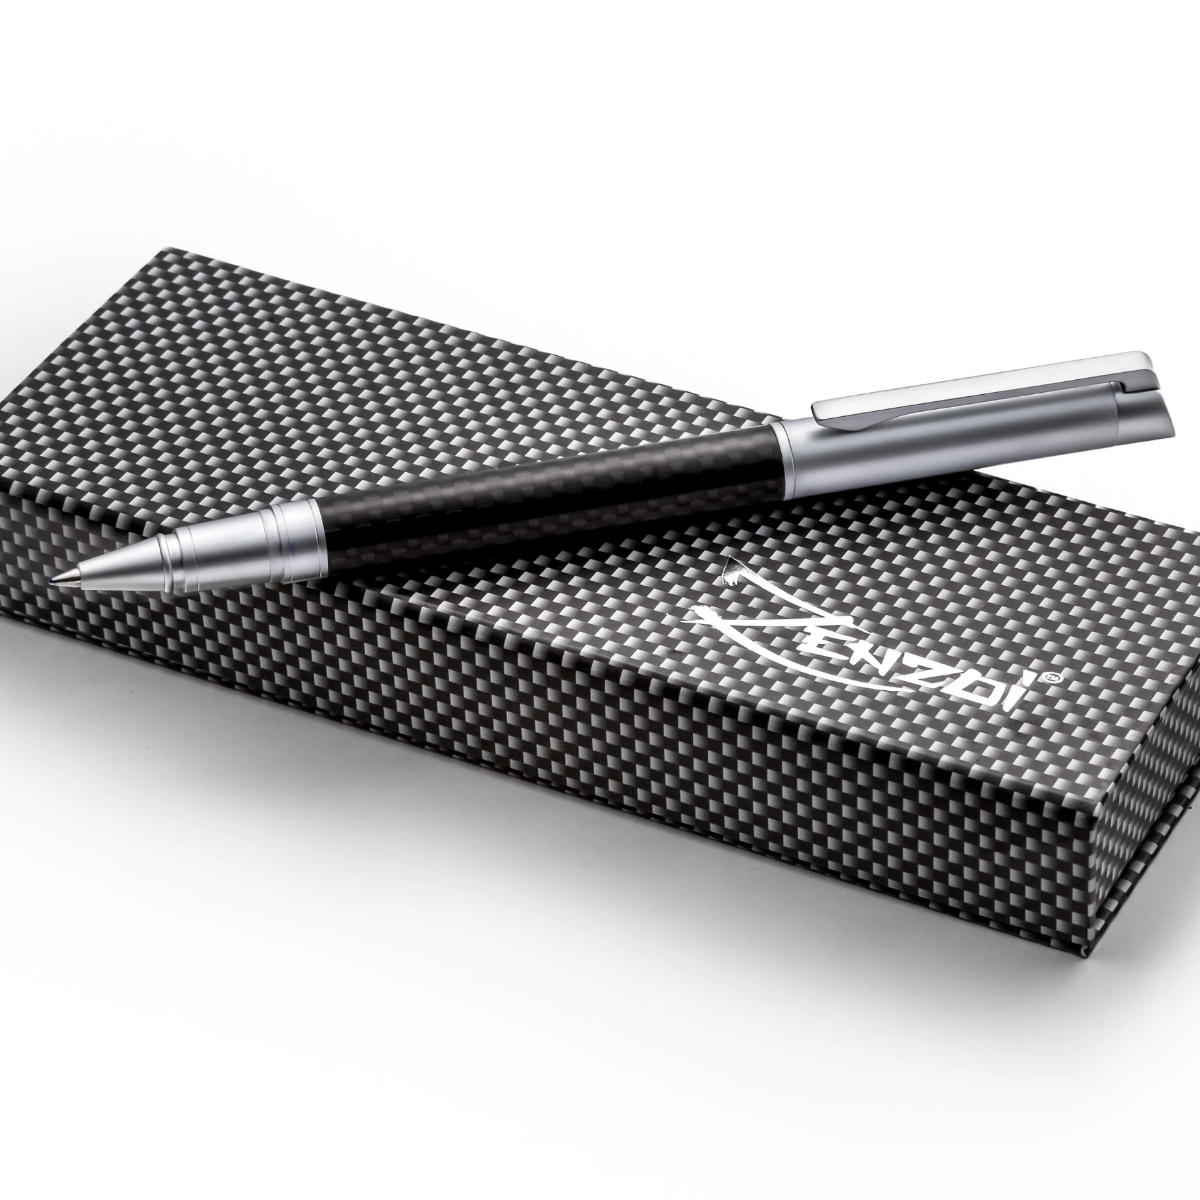 Carbon Fiber Rollerball Ink Pen Set - Modern Matte Finish - W/ 0.5mm Schneider Ink Refill & Gift Box Case